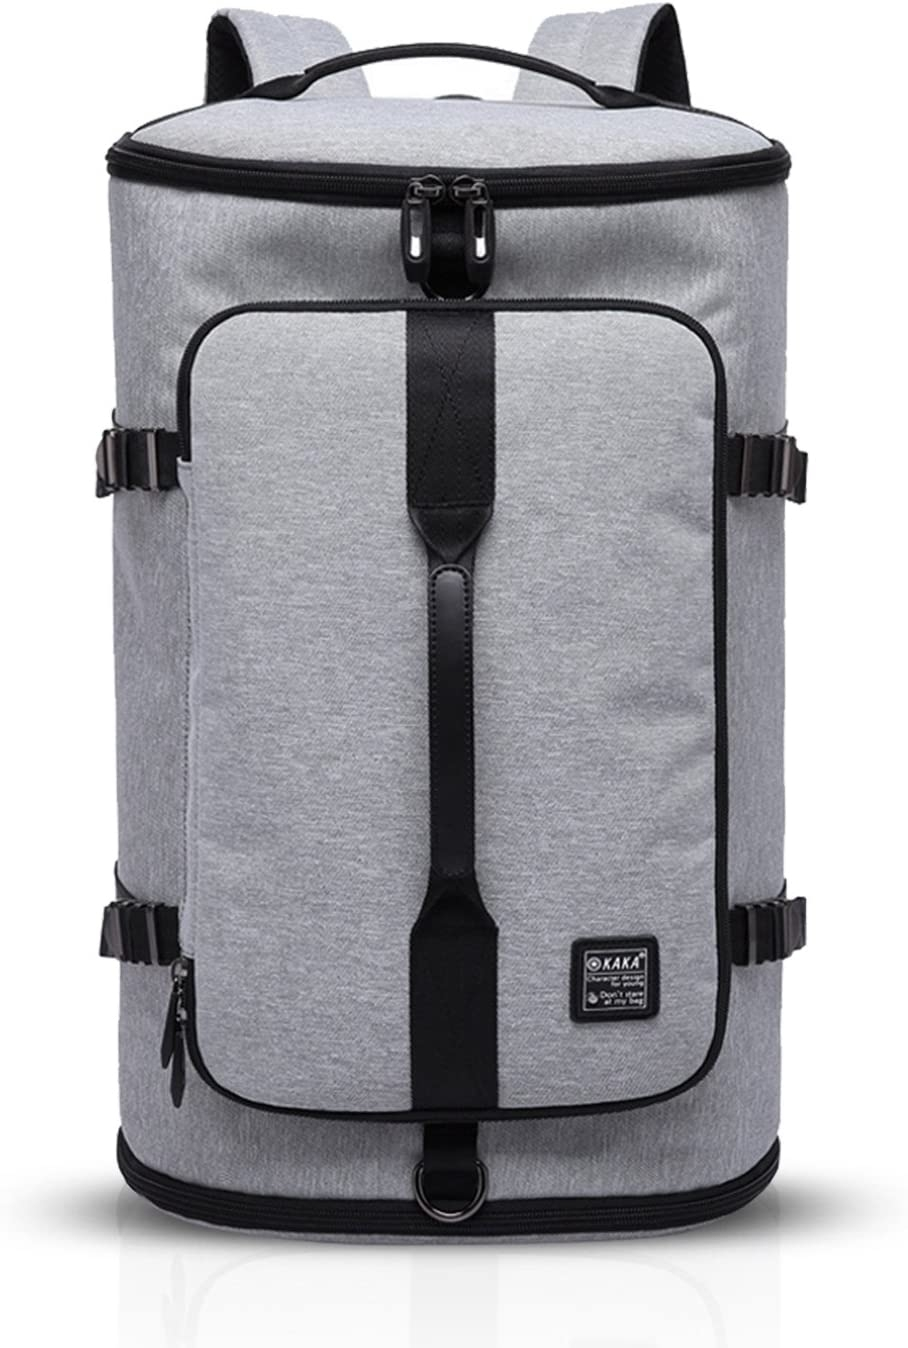 Universal Travel Backpack with Laptop and Shoes Compartments